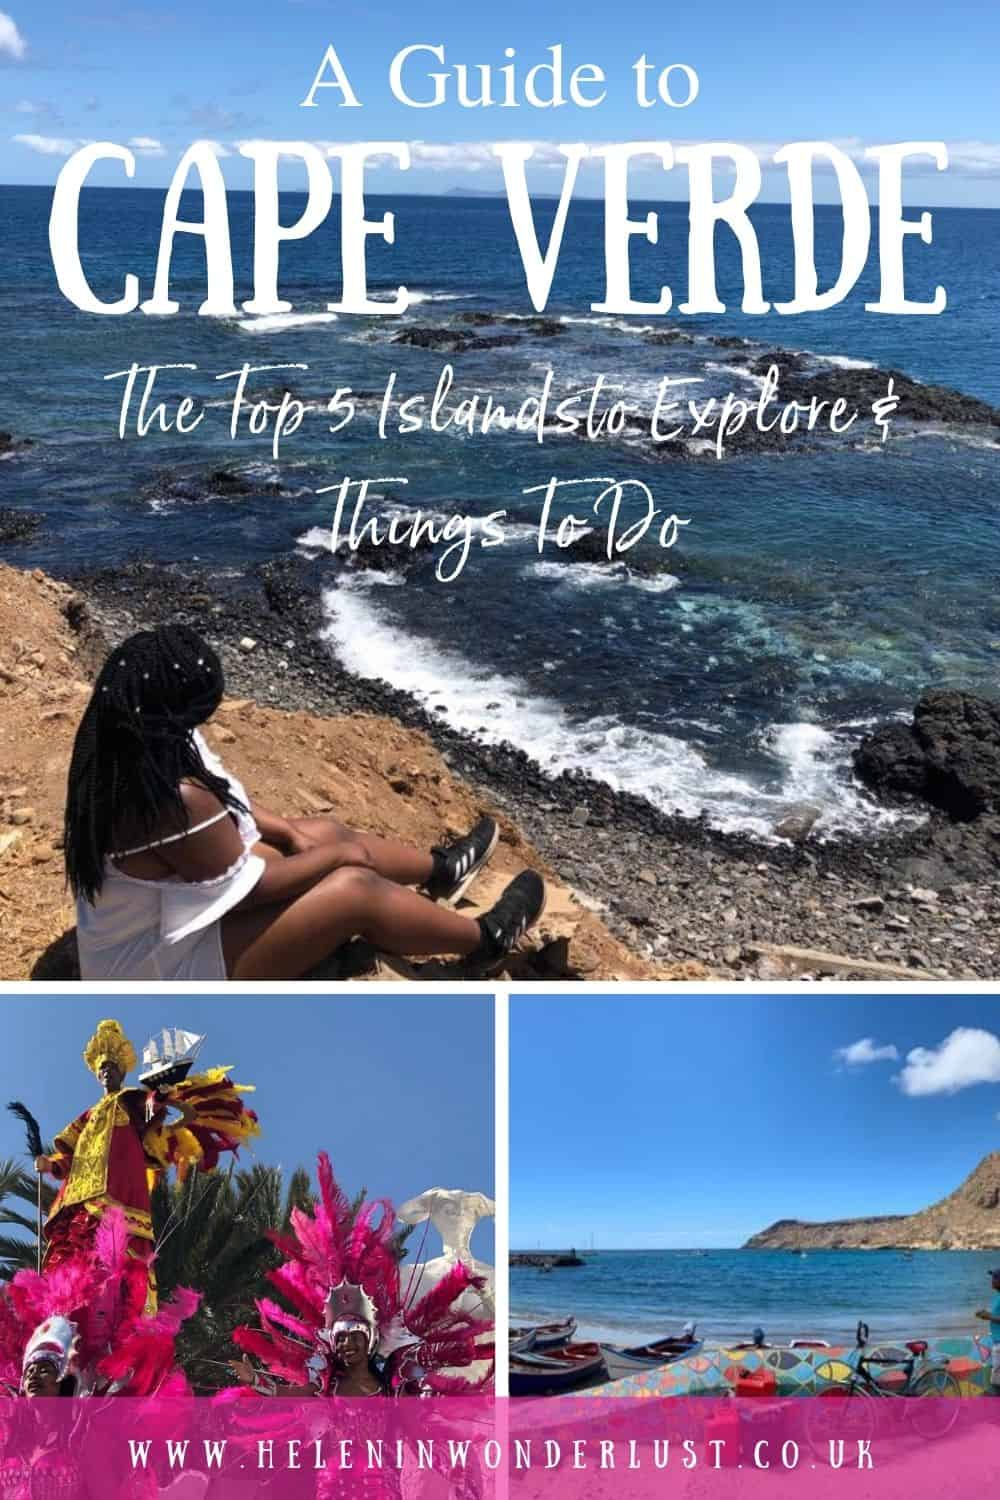 Top 5 Cape Verde Islands to Explore & Things To Do